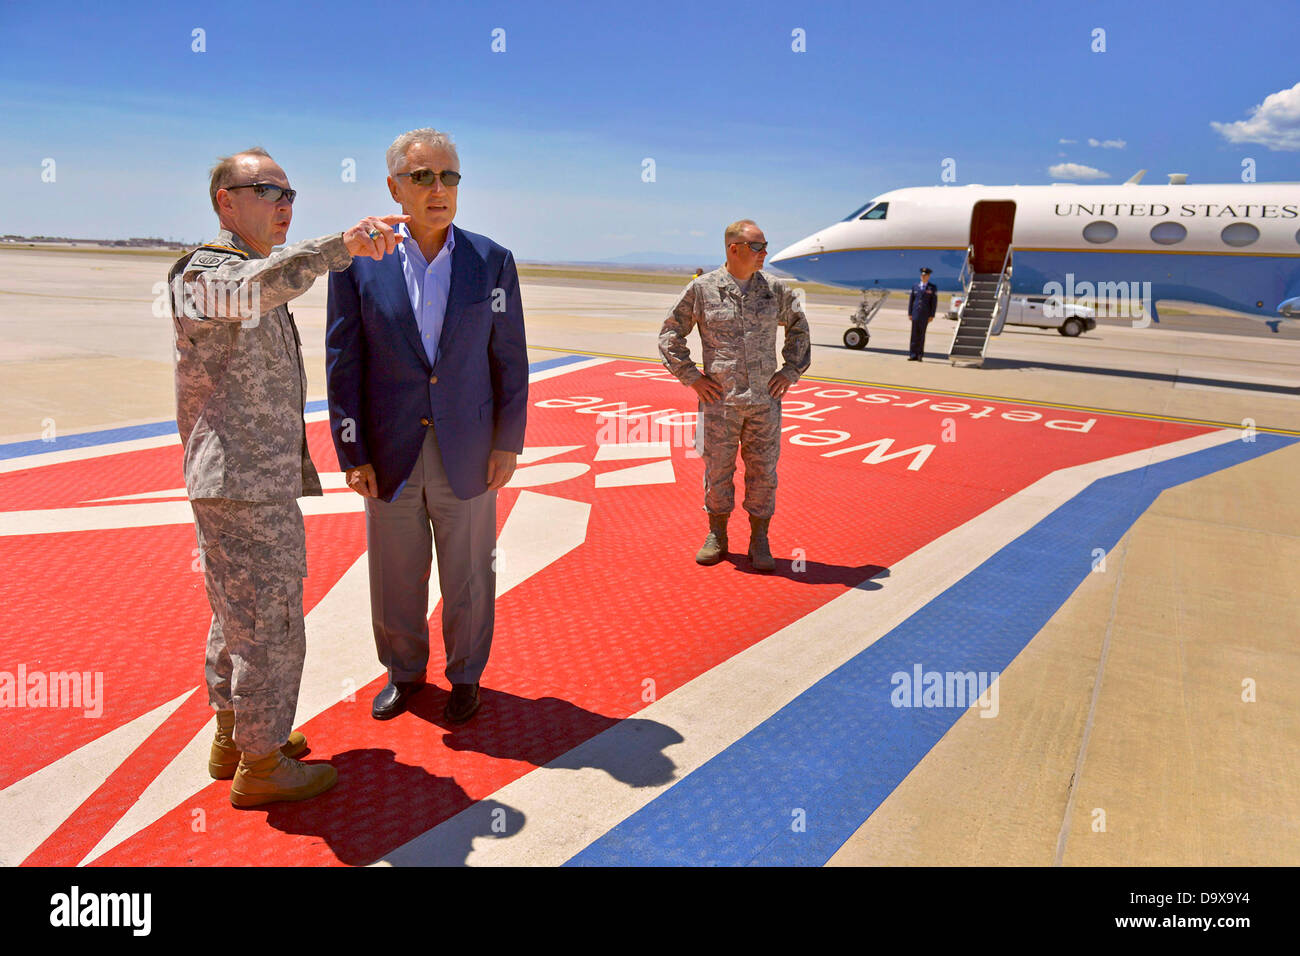 Colorado Springs, CO. USA. June 27, 2013. US Secretary of Defense Chuck Hagel is greeted by the Commander USNORTHCOM - Stock Image